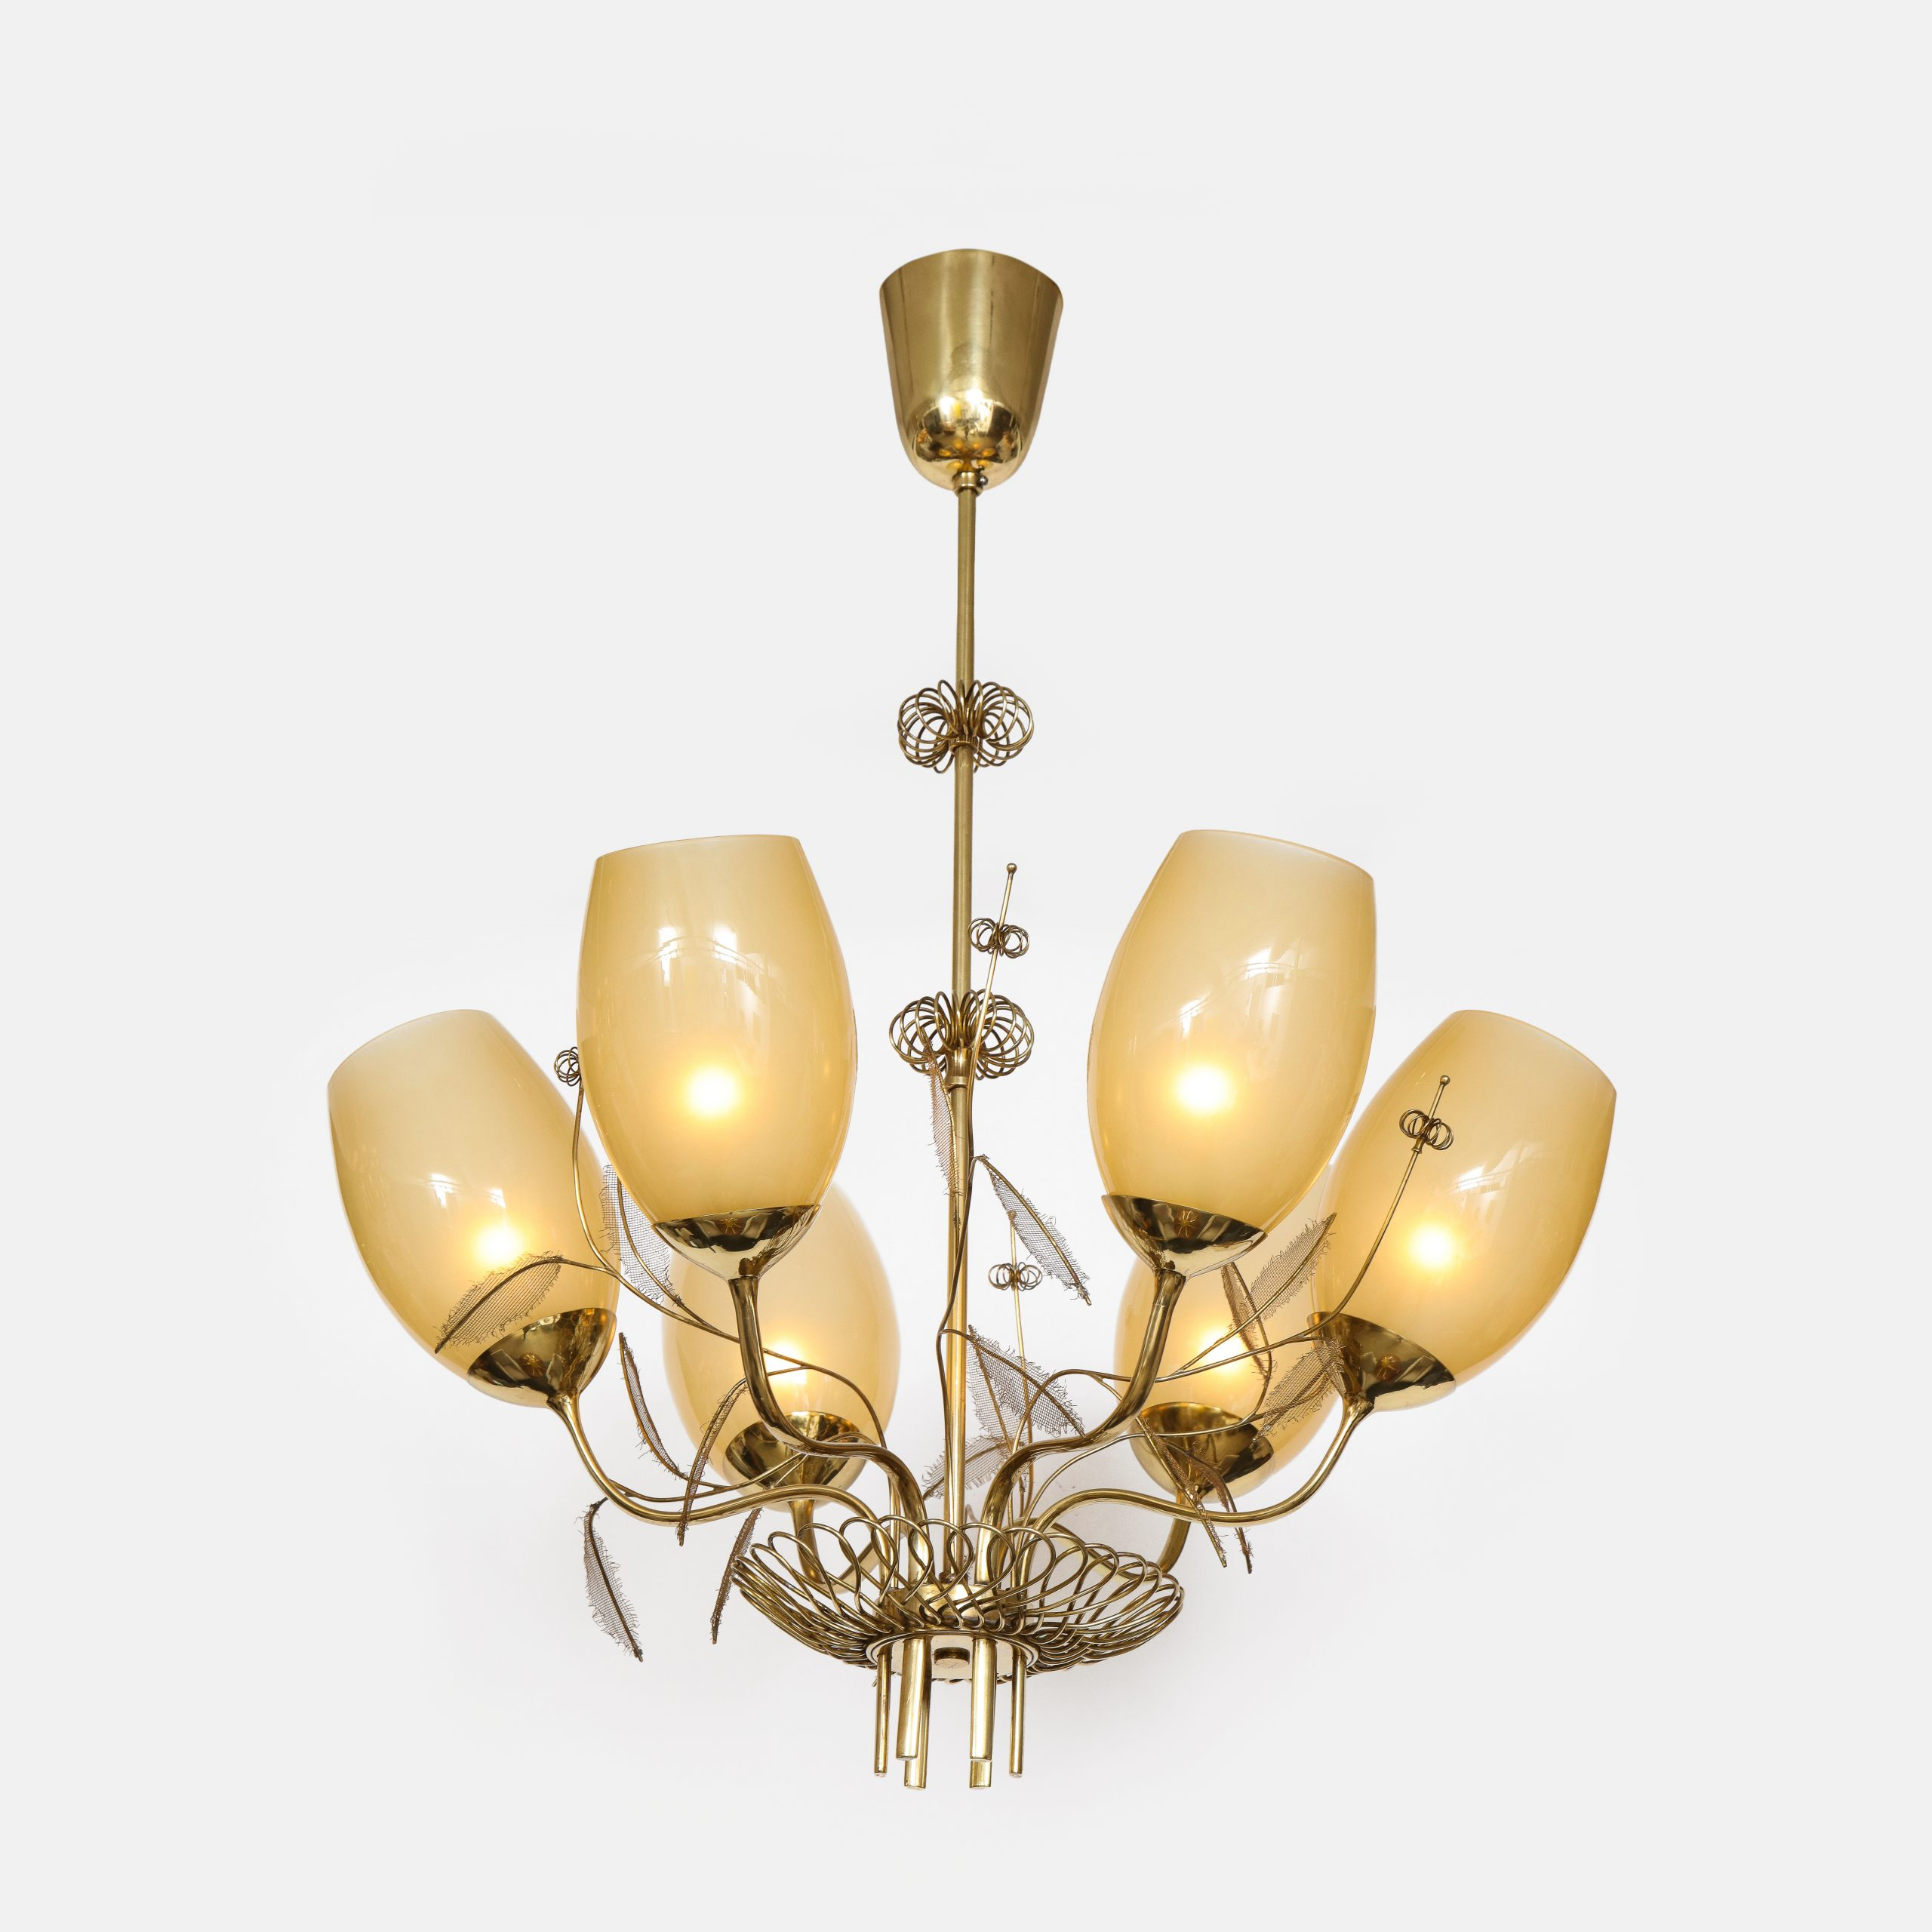 Chandelier Model 9029/6 by Paavo Tynell for Taito Oy   soyun k.